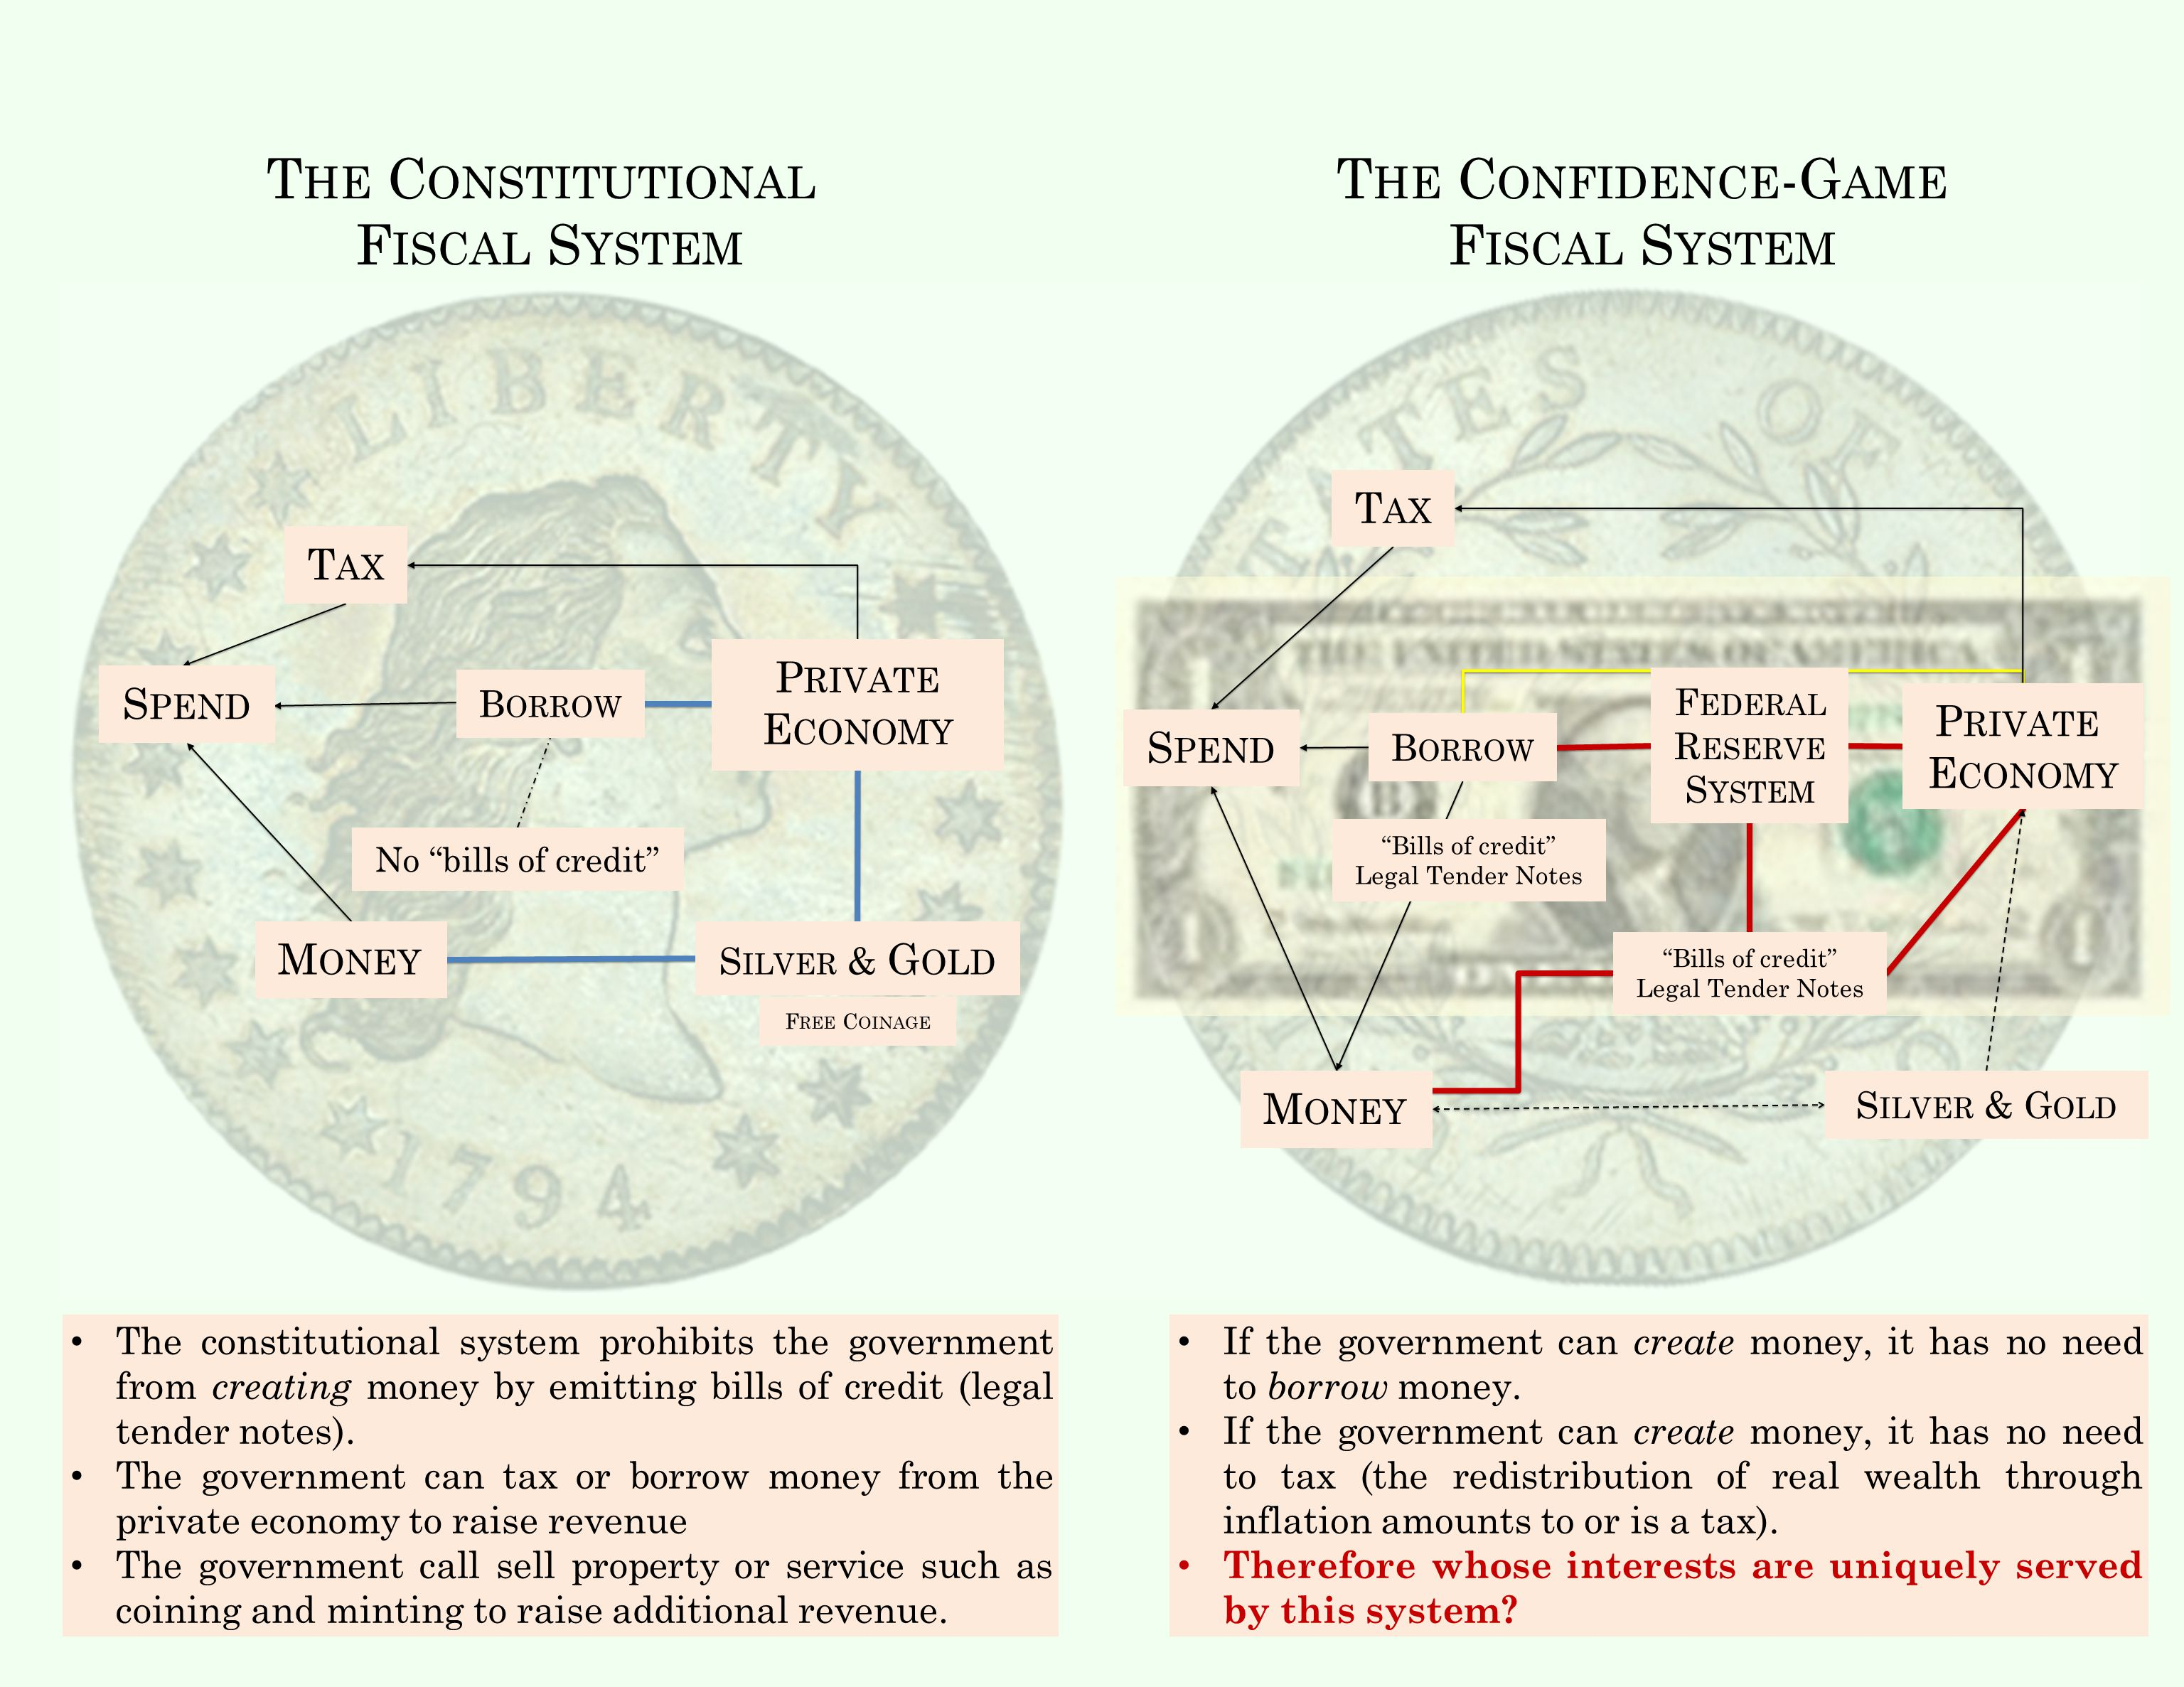 T HE C ONSTITUTIONAL F ISCAL S YSTEM T HE C ONFIDENCE -G AME F ISCAL S YSTEM The constitutional system prohibits the government from creating money by emitting bills of credit (legal tender notes).